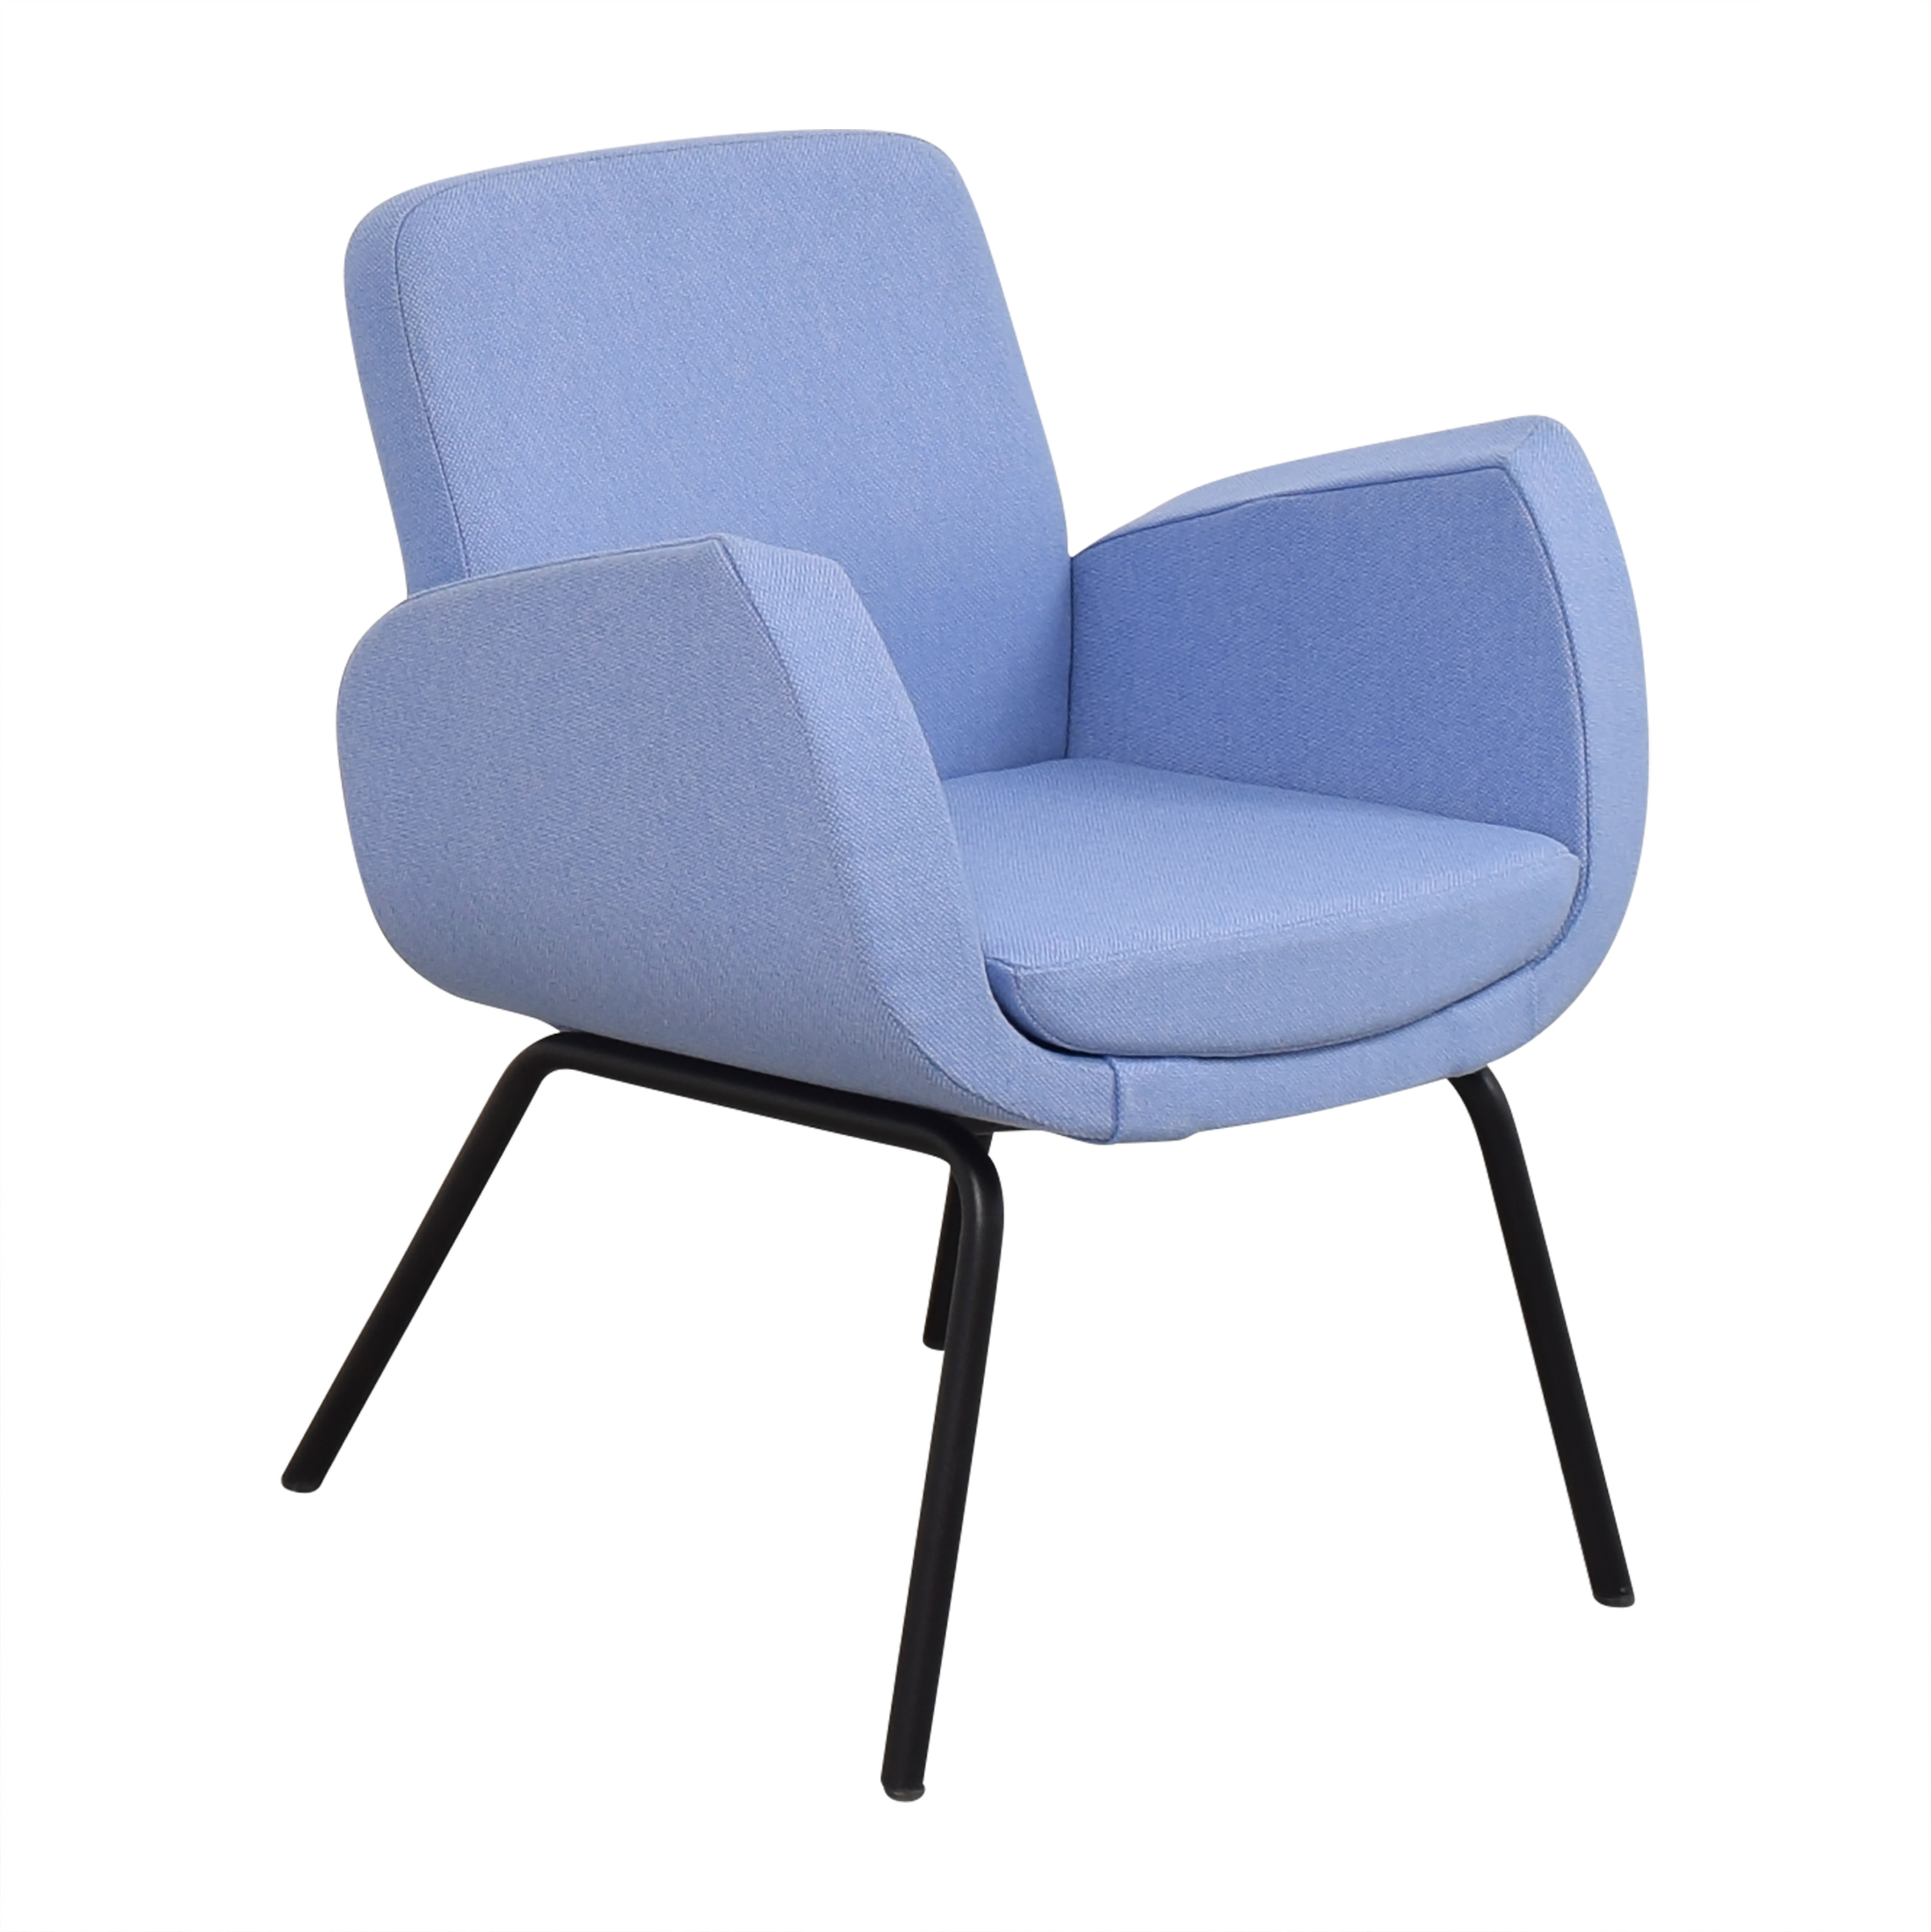 Global Furniture Group Global Furniture Group Kate Chair second hand